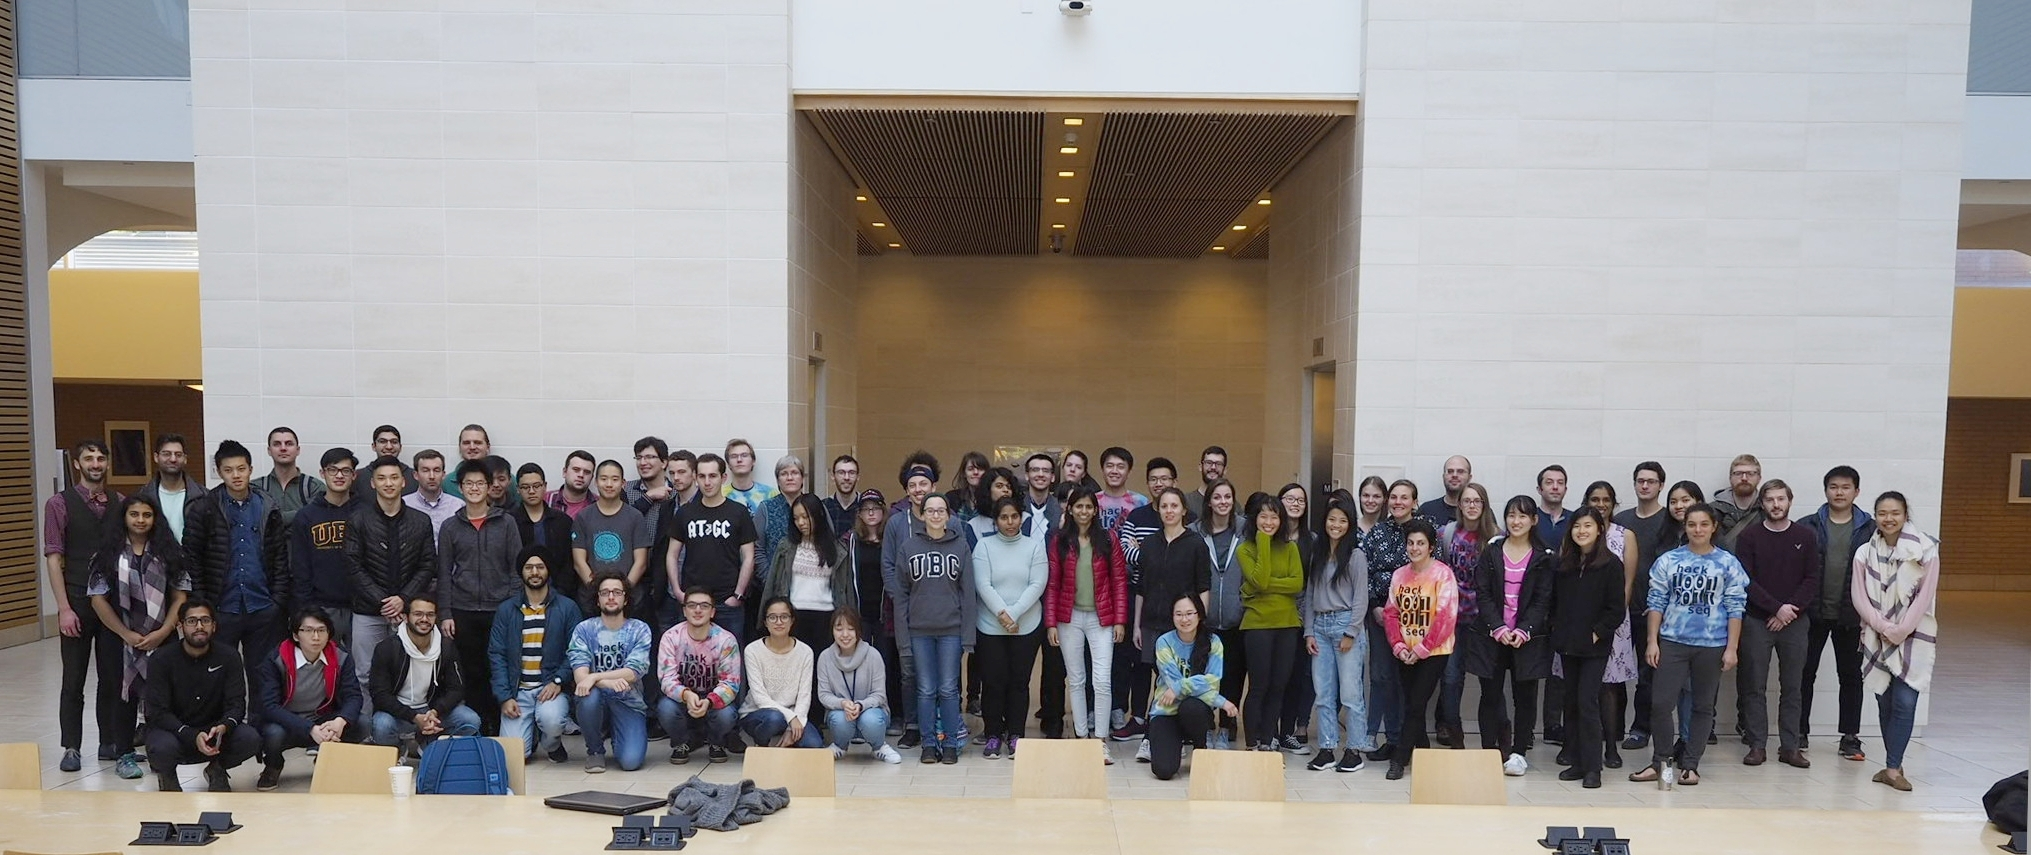 hackseq18 was a resounding success! Big thanks to all the participants, team leaders, and volunteers.